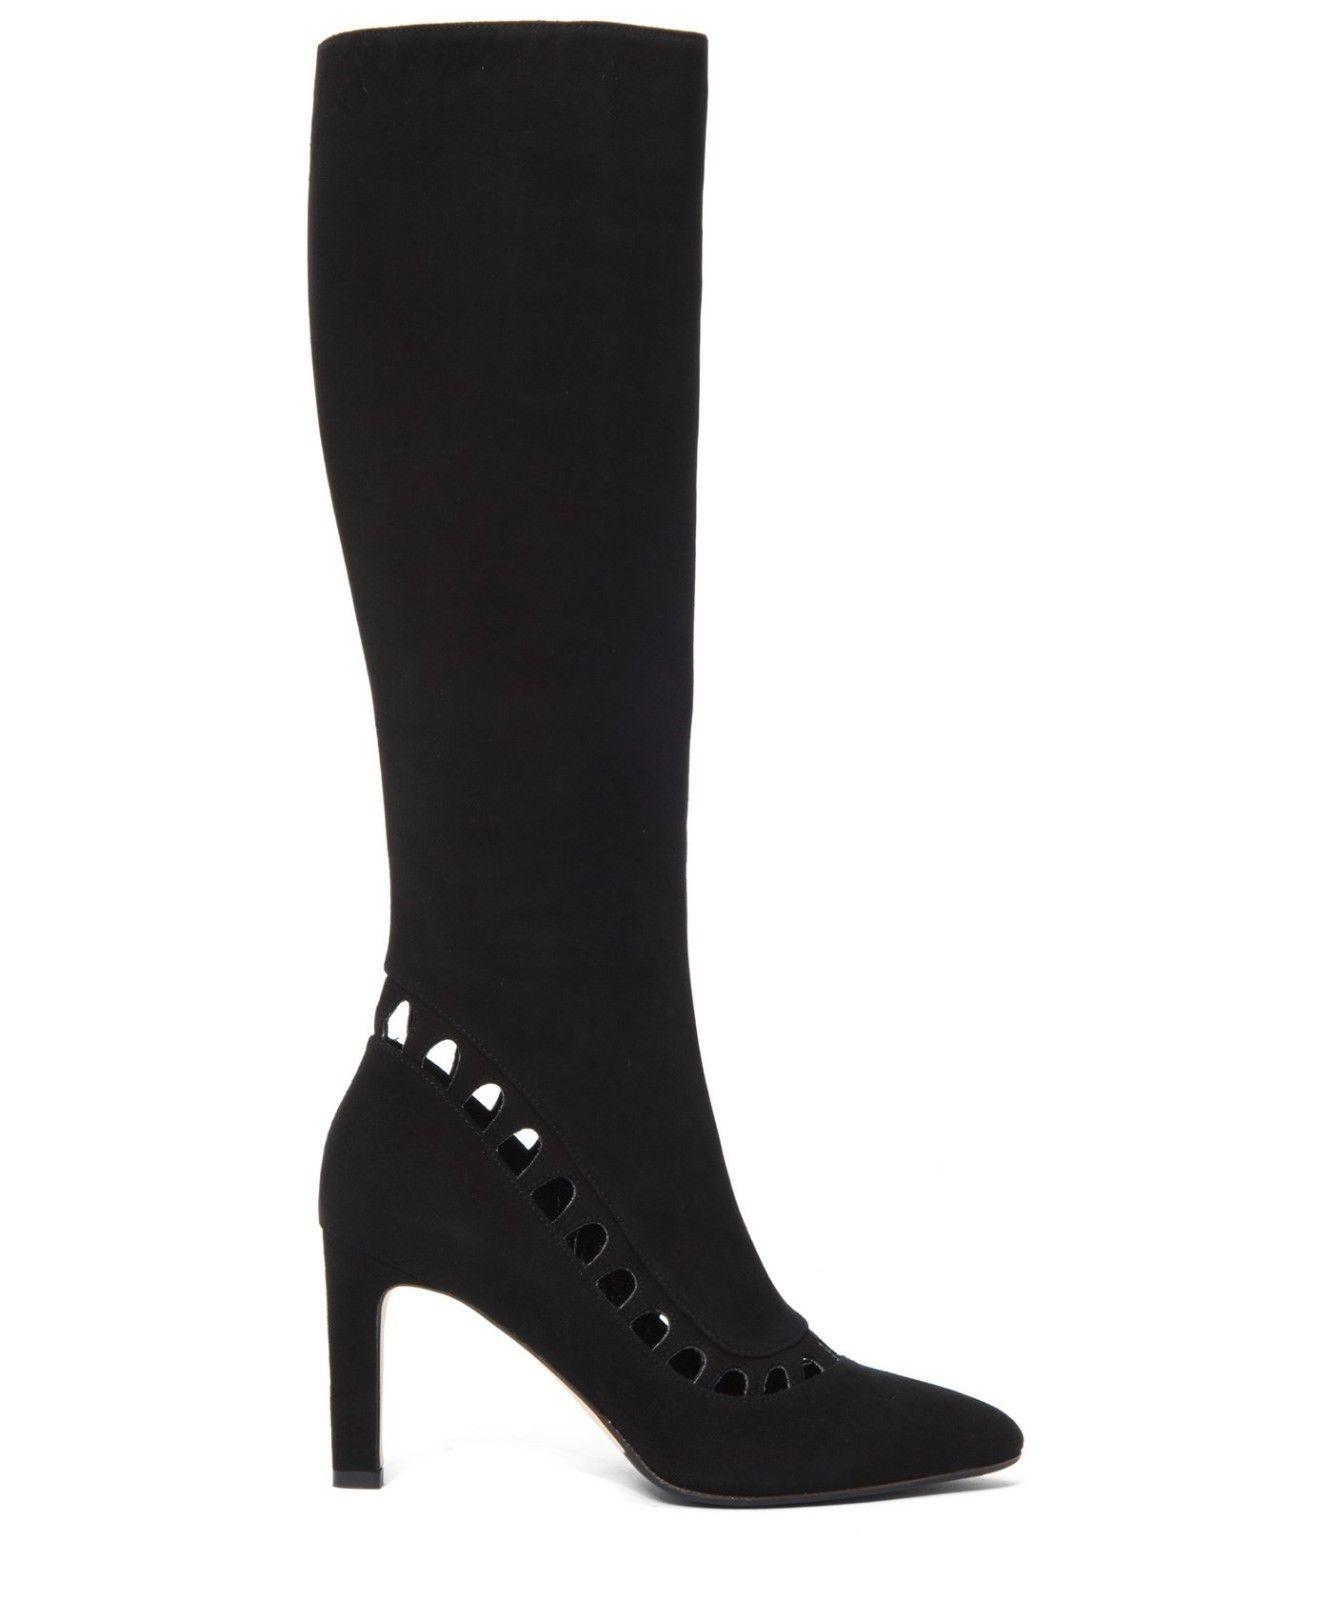 $695 Aquatalia Tall Aliana Knee High Boots Black Suede Cut Out Zipper Booties 10